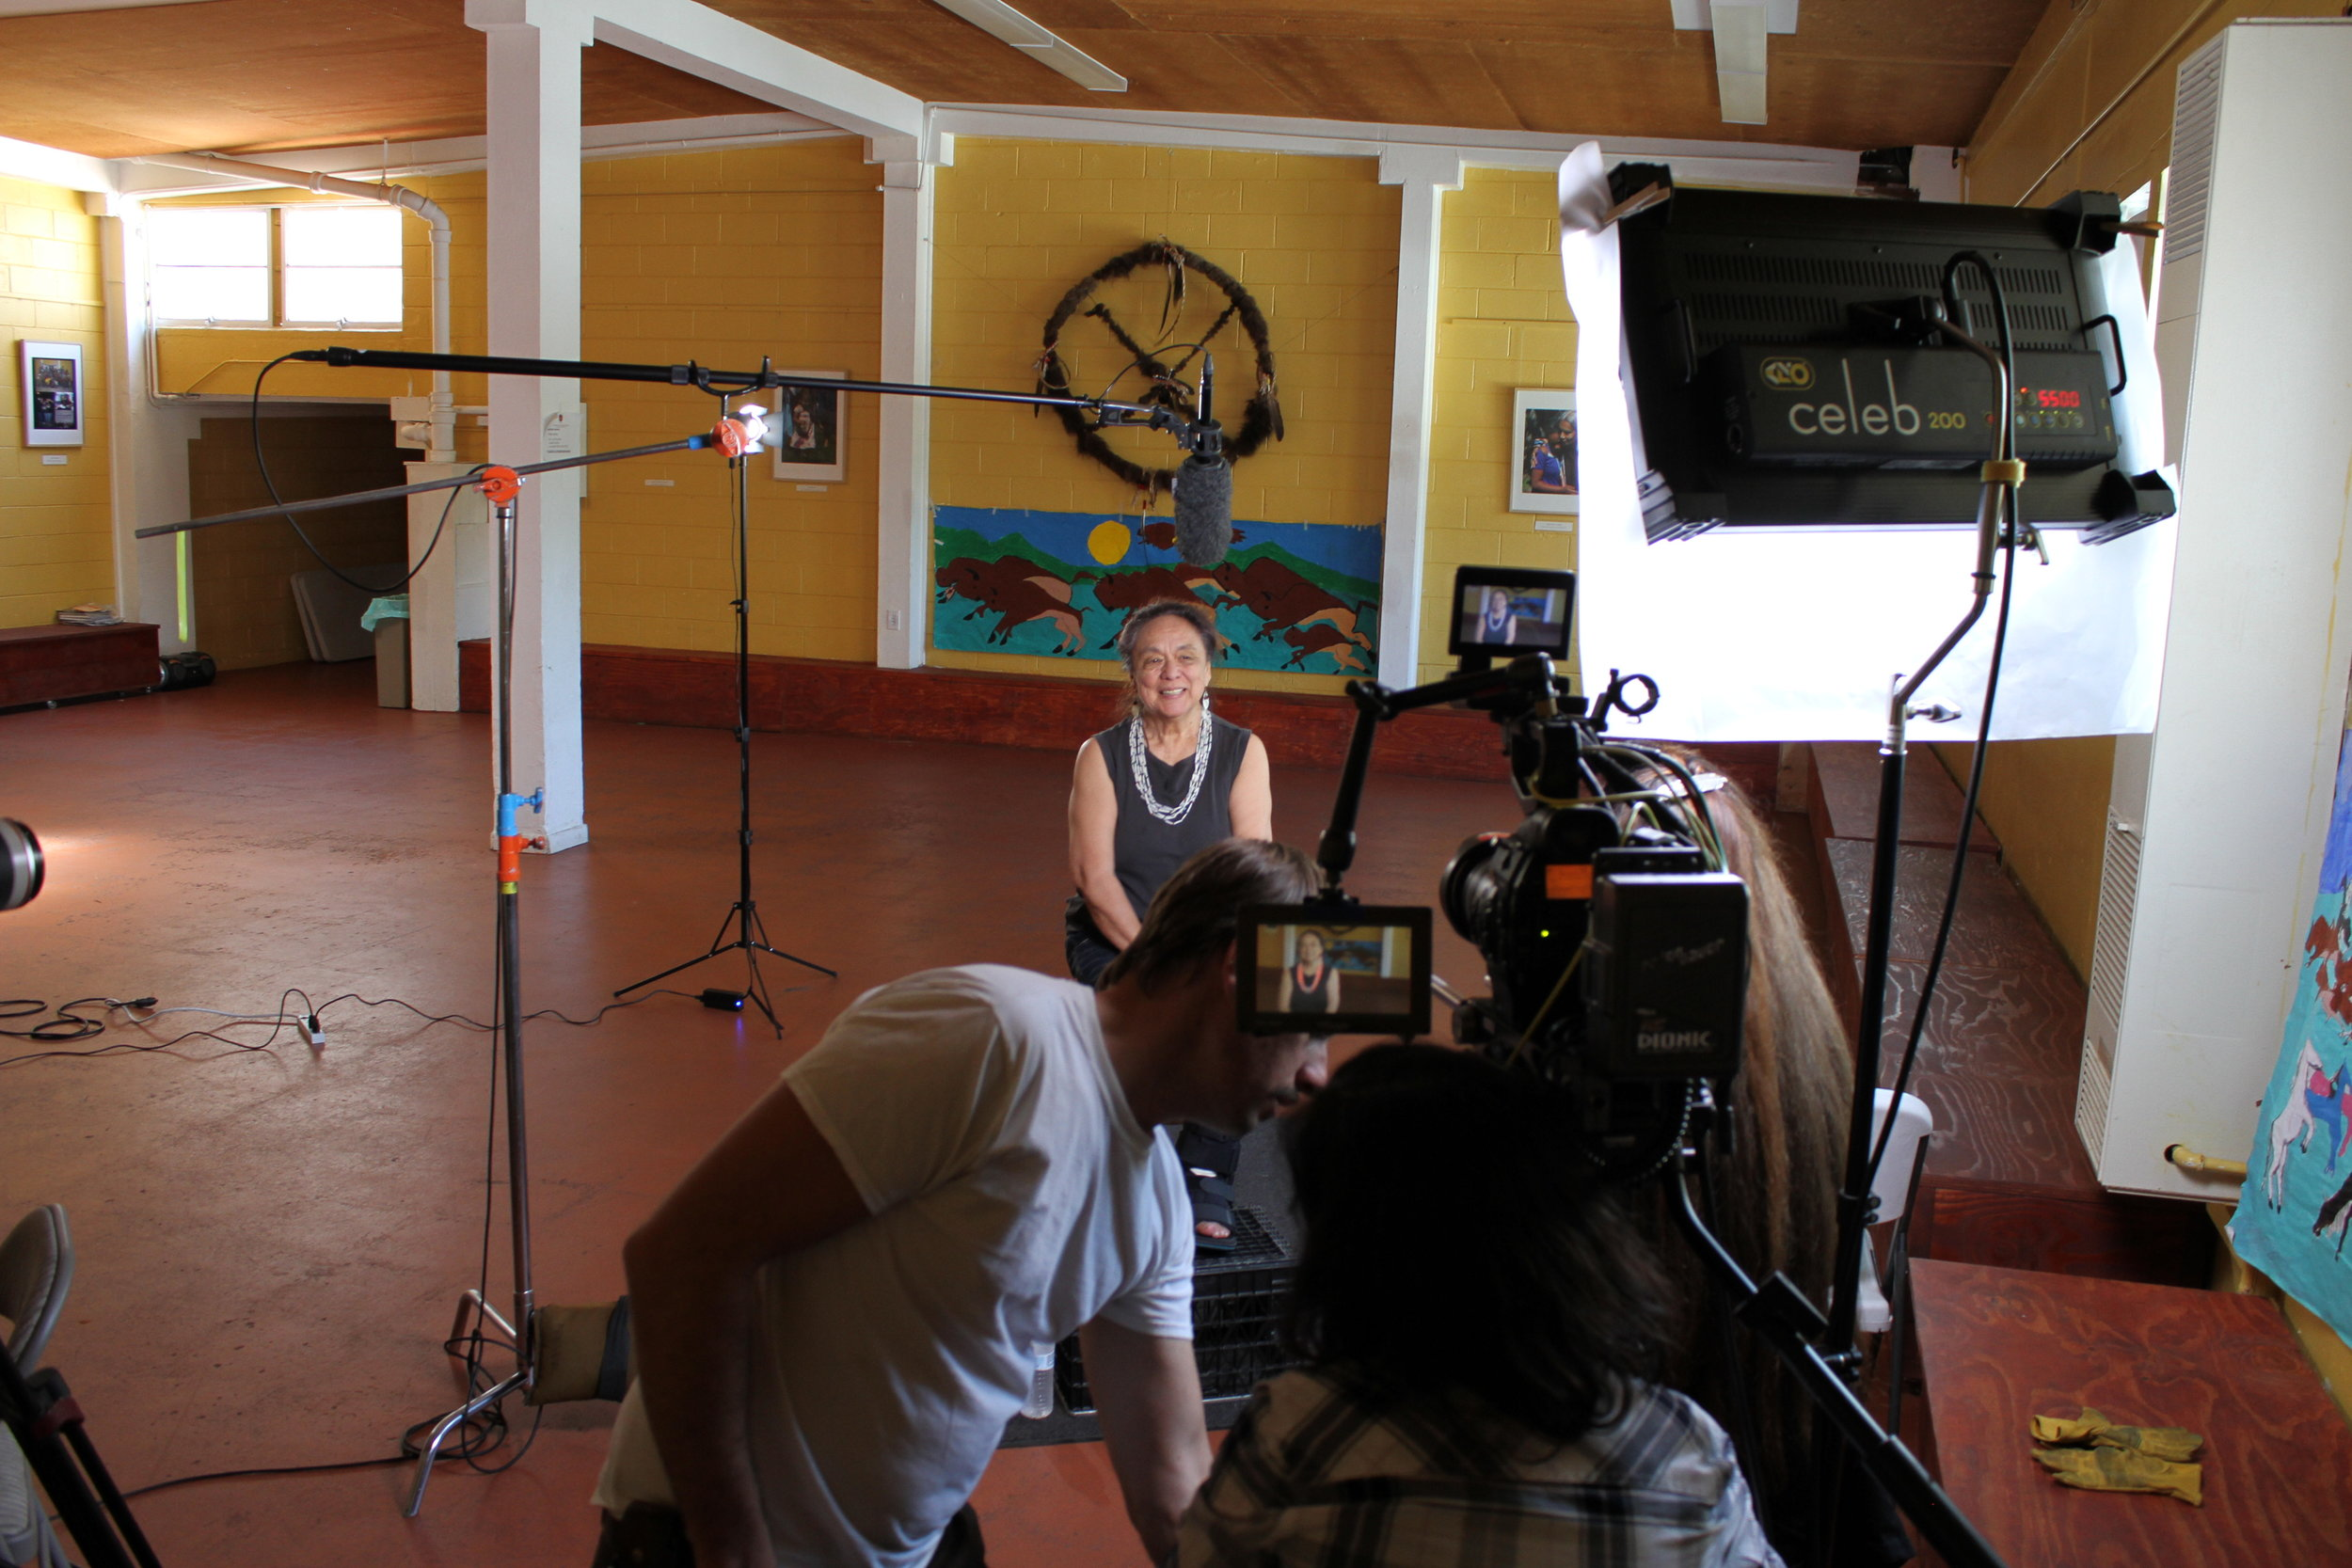 On location at the Intertribal Friendship House in Oakland, CA the Mankiller crew interviews Betty Parent